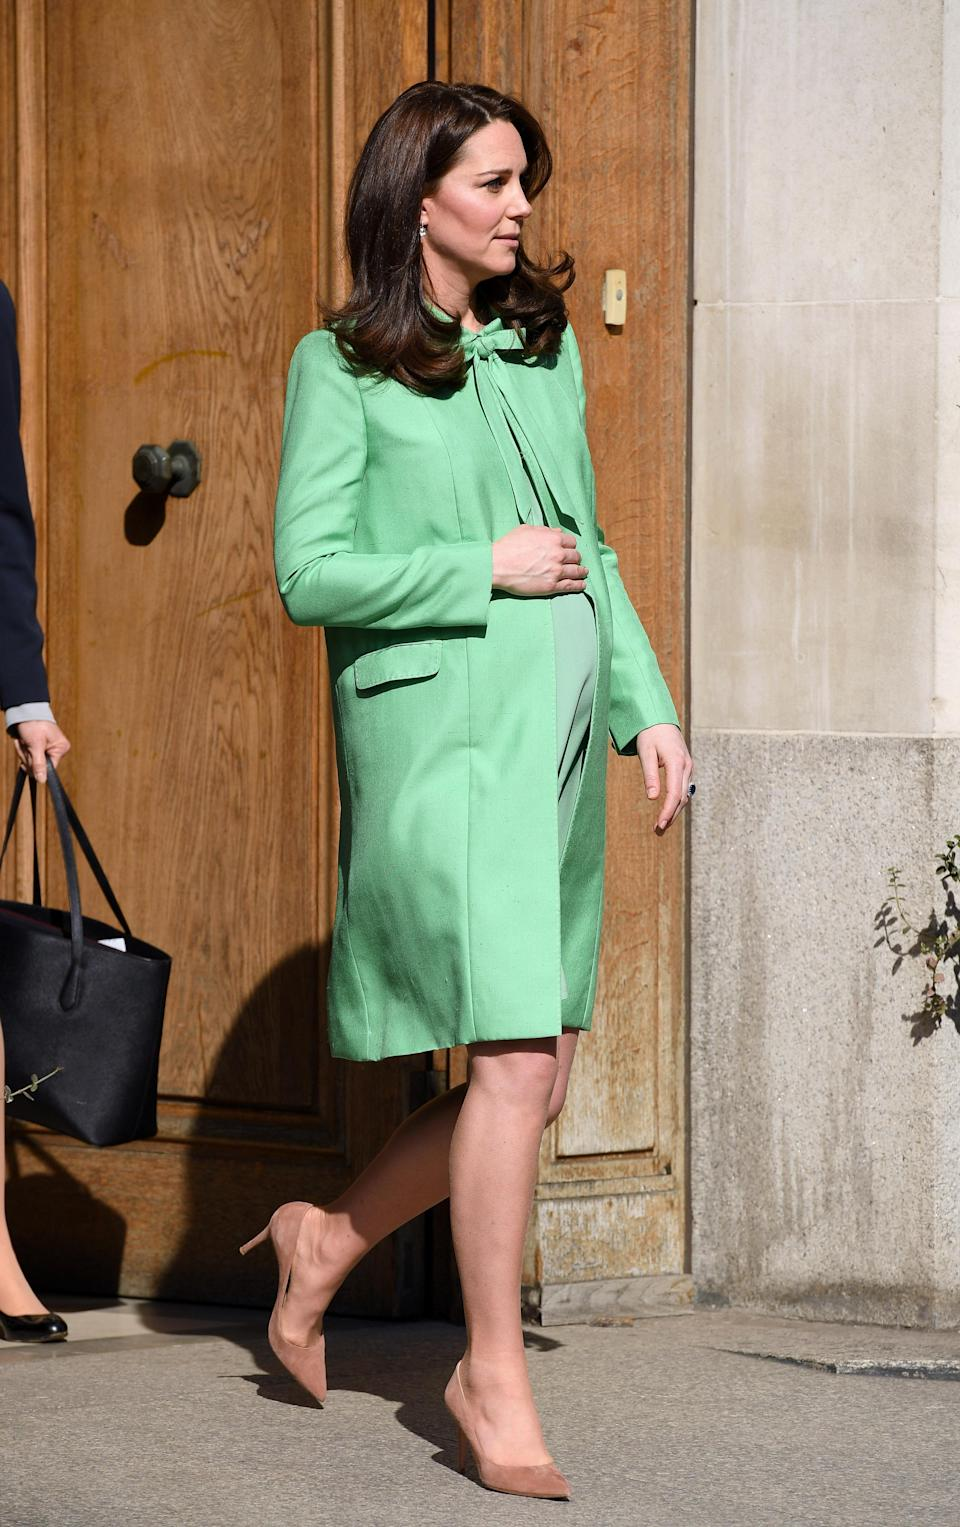 <p><strong>The occassion:</strong> A visit to the Royal Society of Medicine in central London.<br><strong>The look:</strong> A mint green bespoke Jenny Packham coat with nude court shoes by Jimmy Choo.<br>[Photo: Getty] </p>